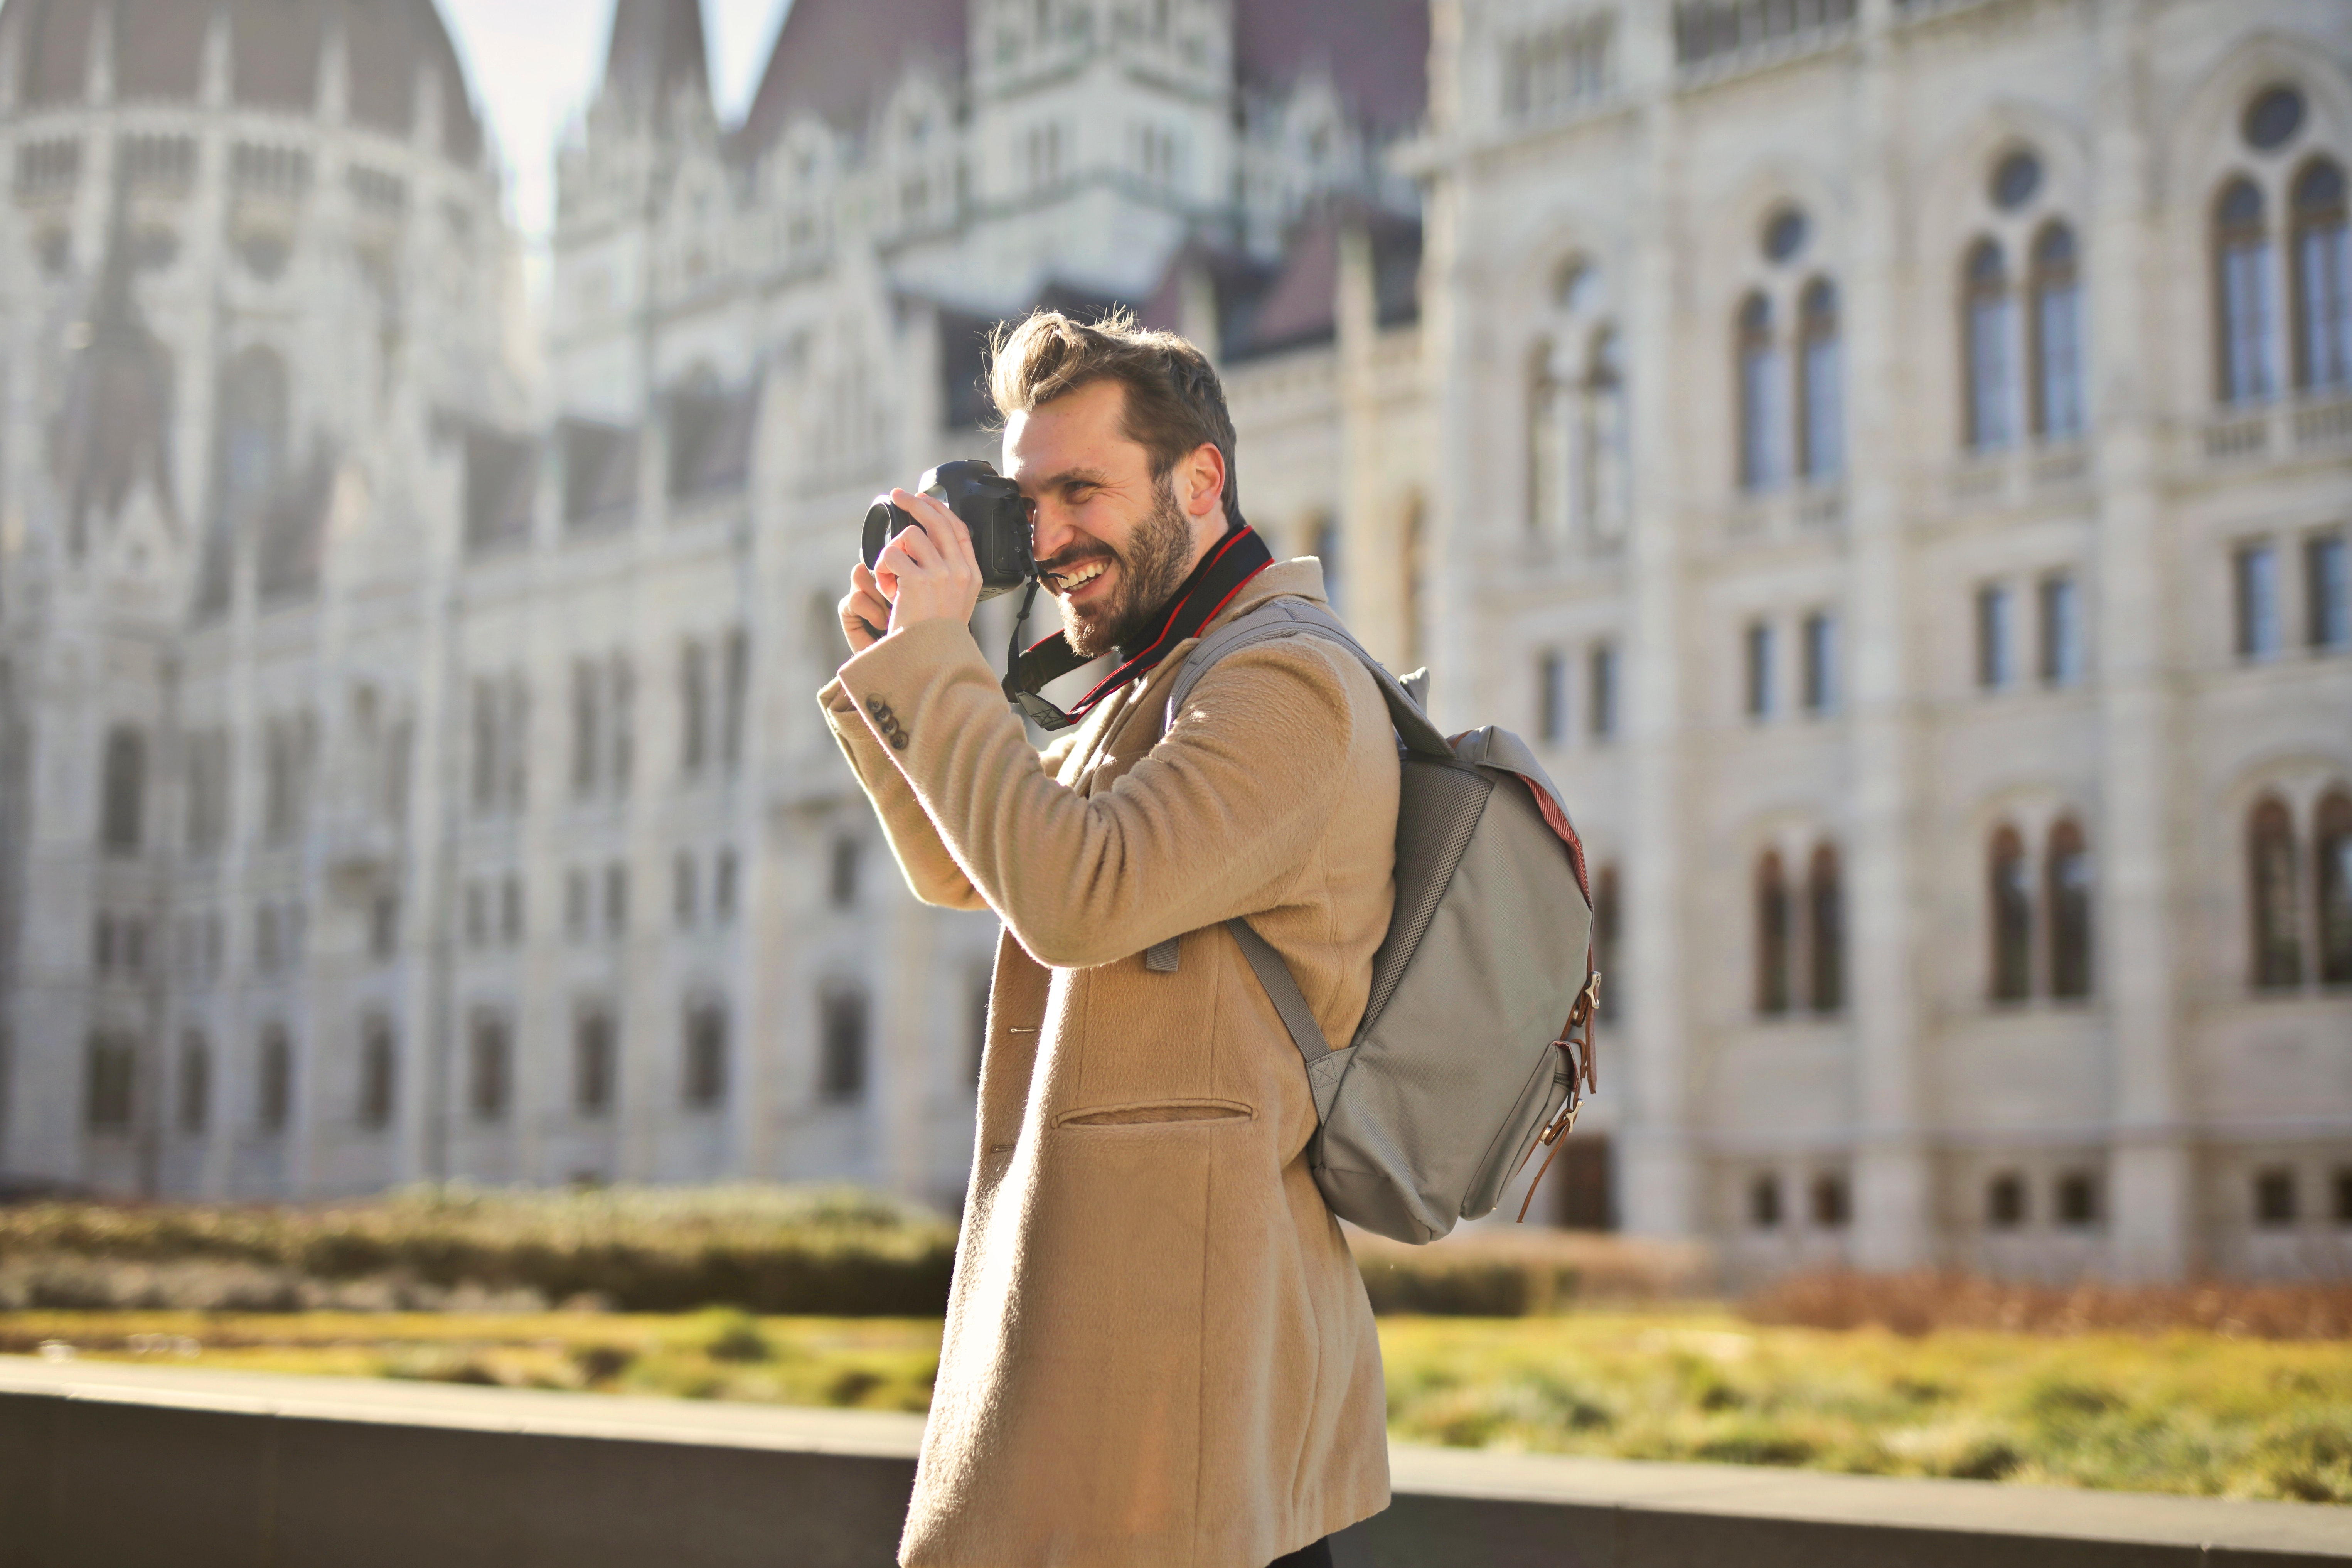 Man Holding and Capturing Images Around Him, Architecture, Smiling, Outside, Person, HQ Photo